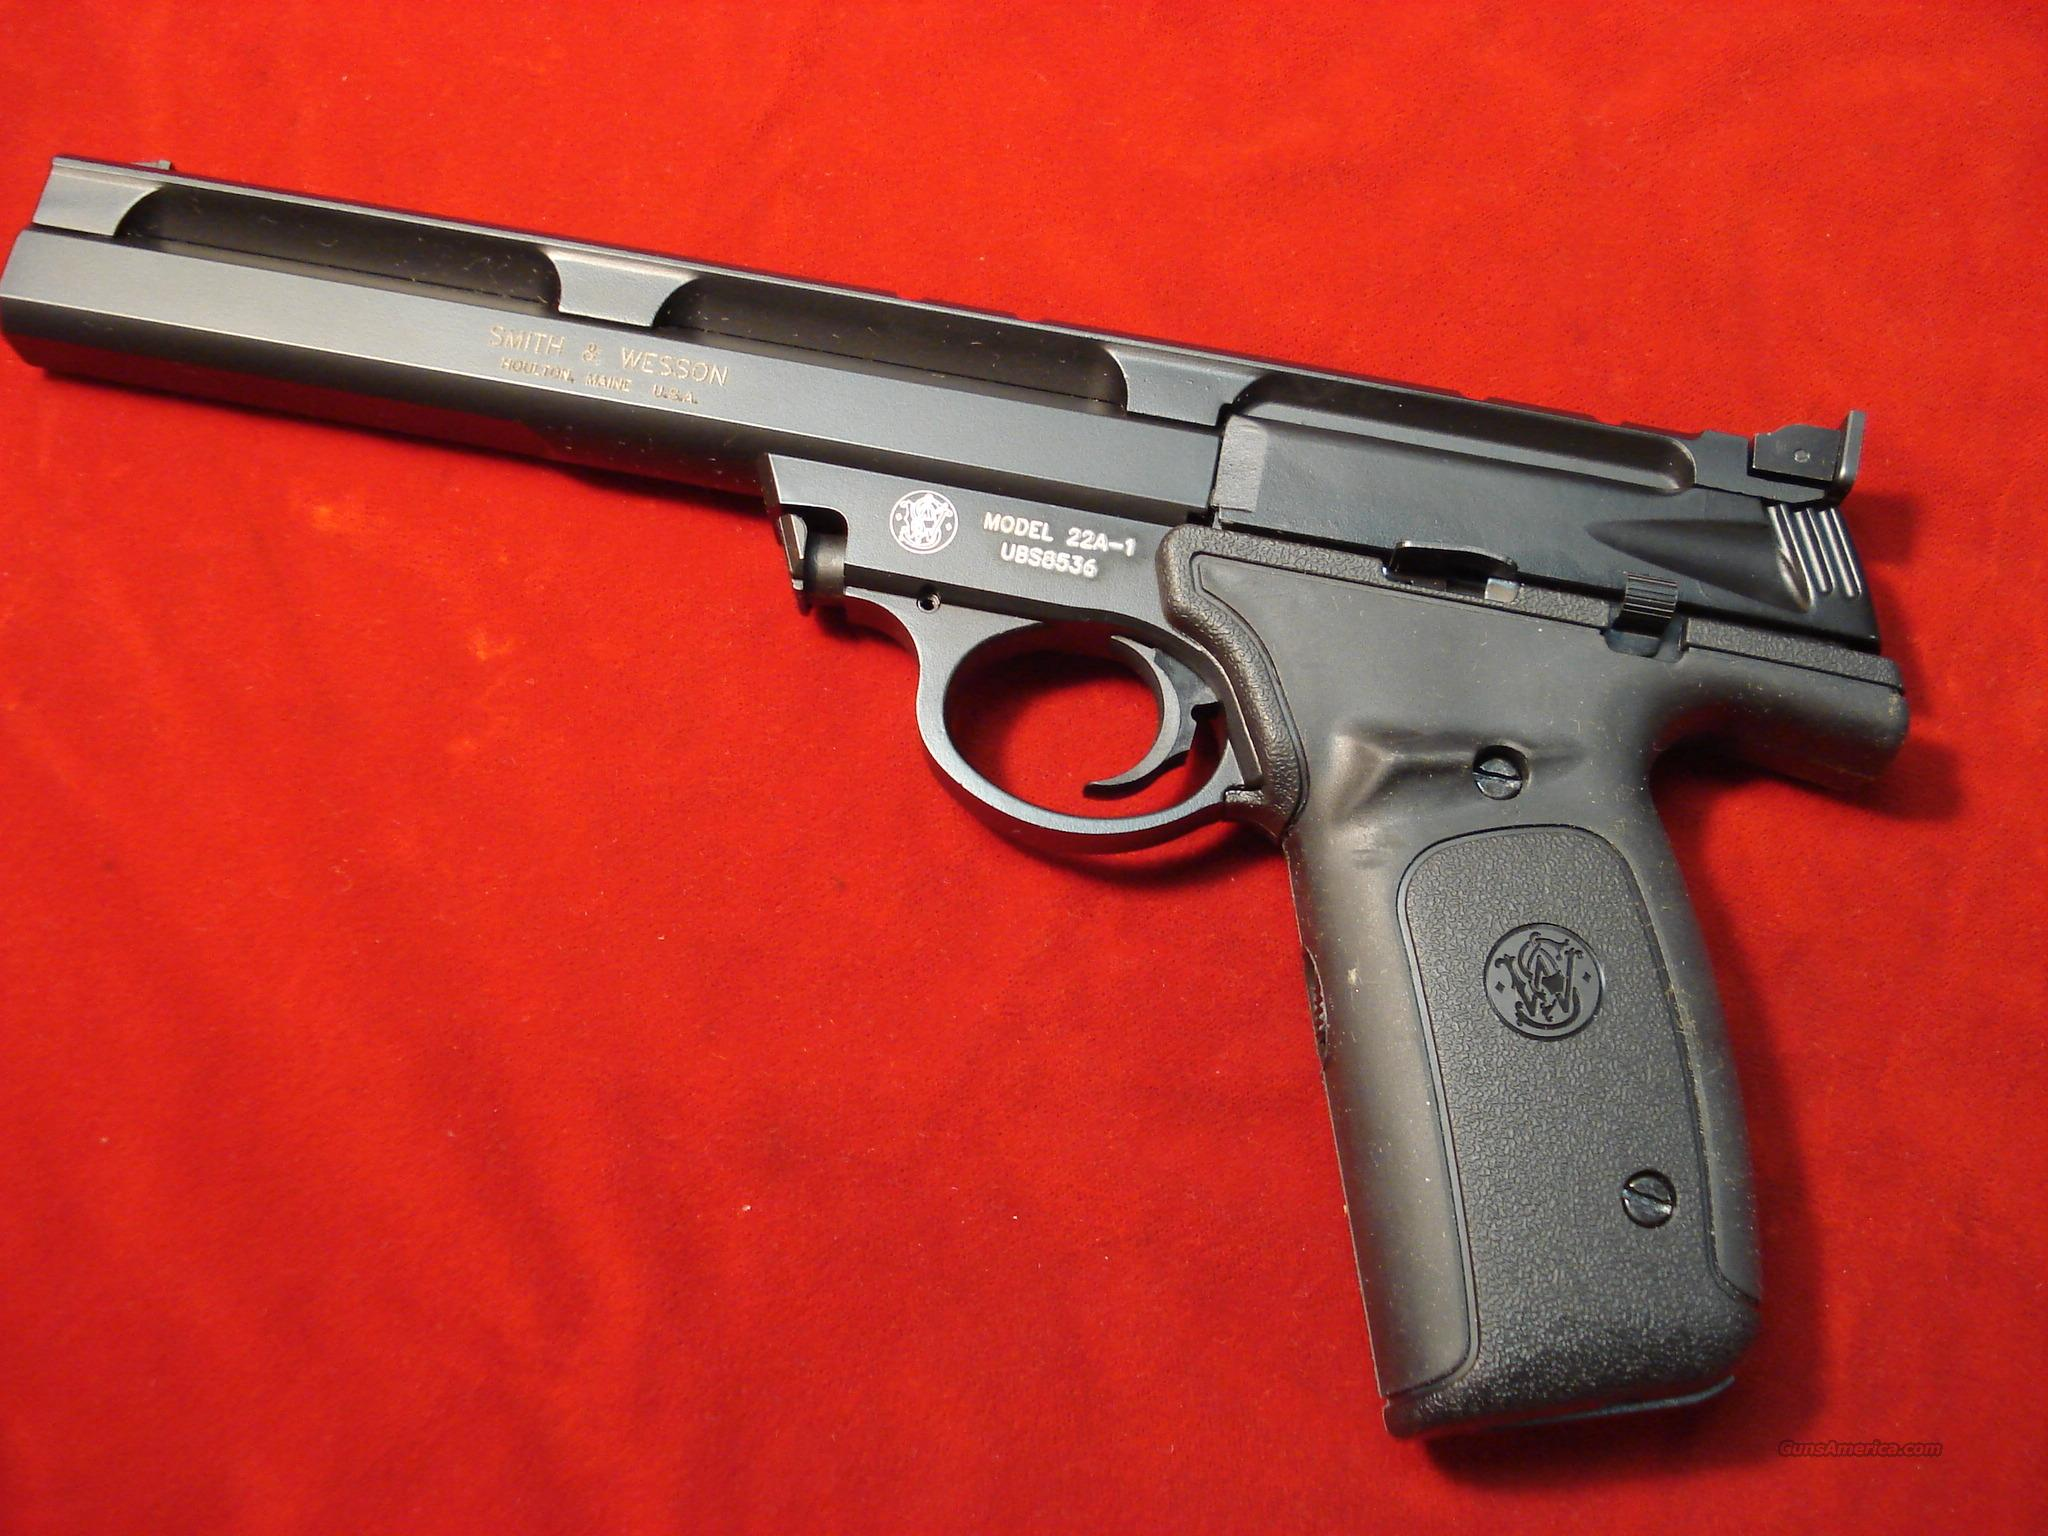 "SMITH AND WESSON 22A 22LR. 7"" NEW  Guns > Pistols > Smith & Wesson Pistols - Autos > .22 Autos"